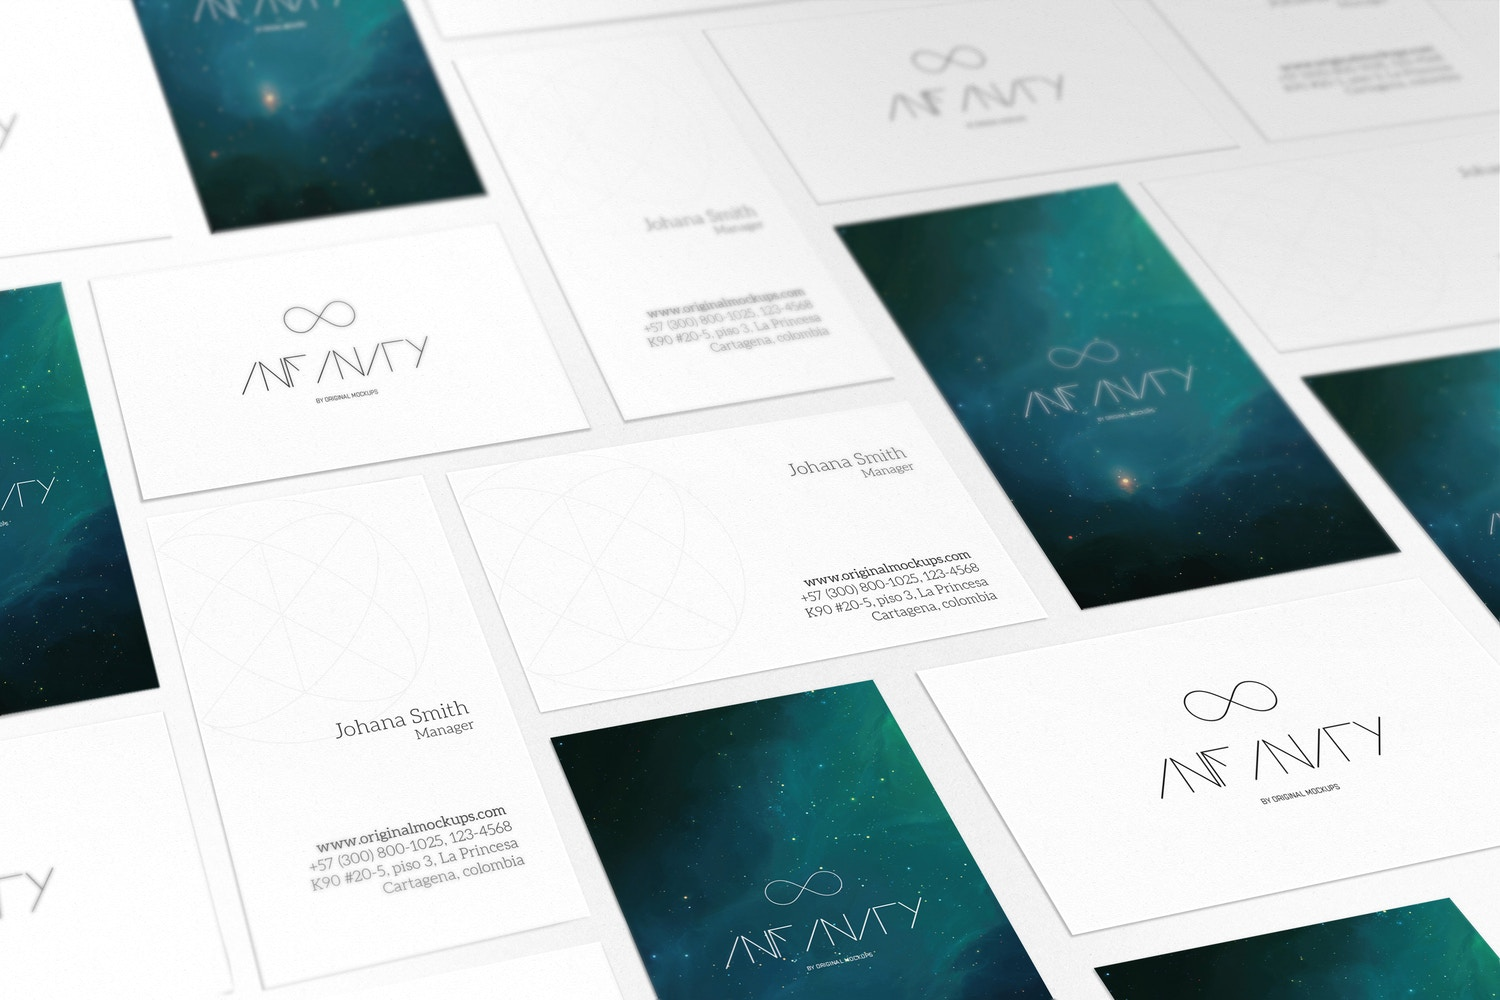 Business Card Mockup 7 by Original Mockups on Original Mockups